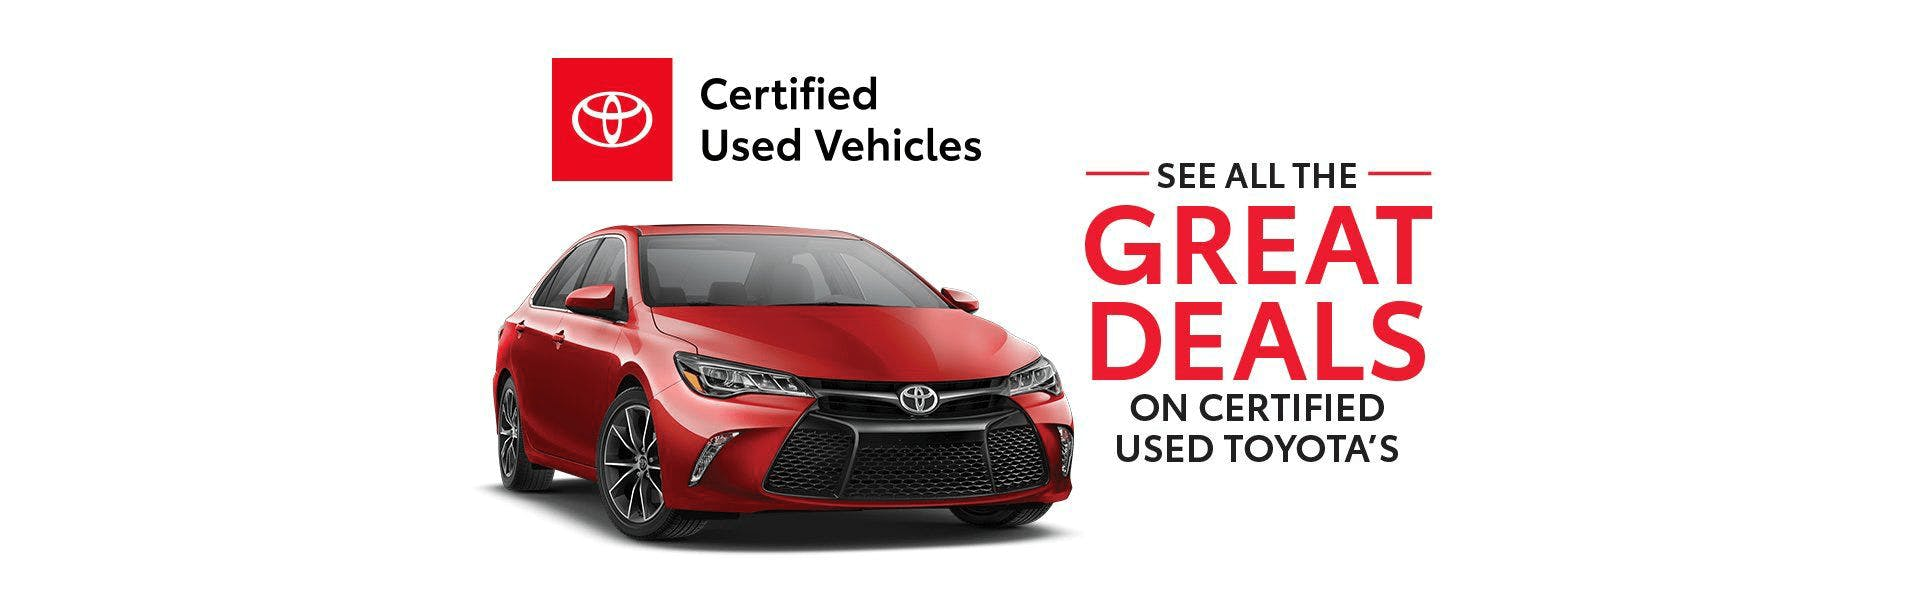 certified used vehicles -